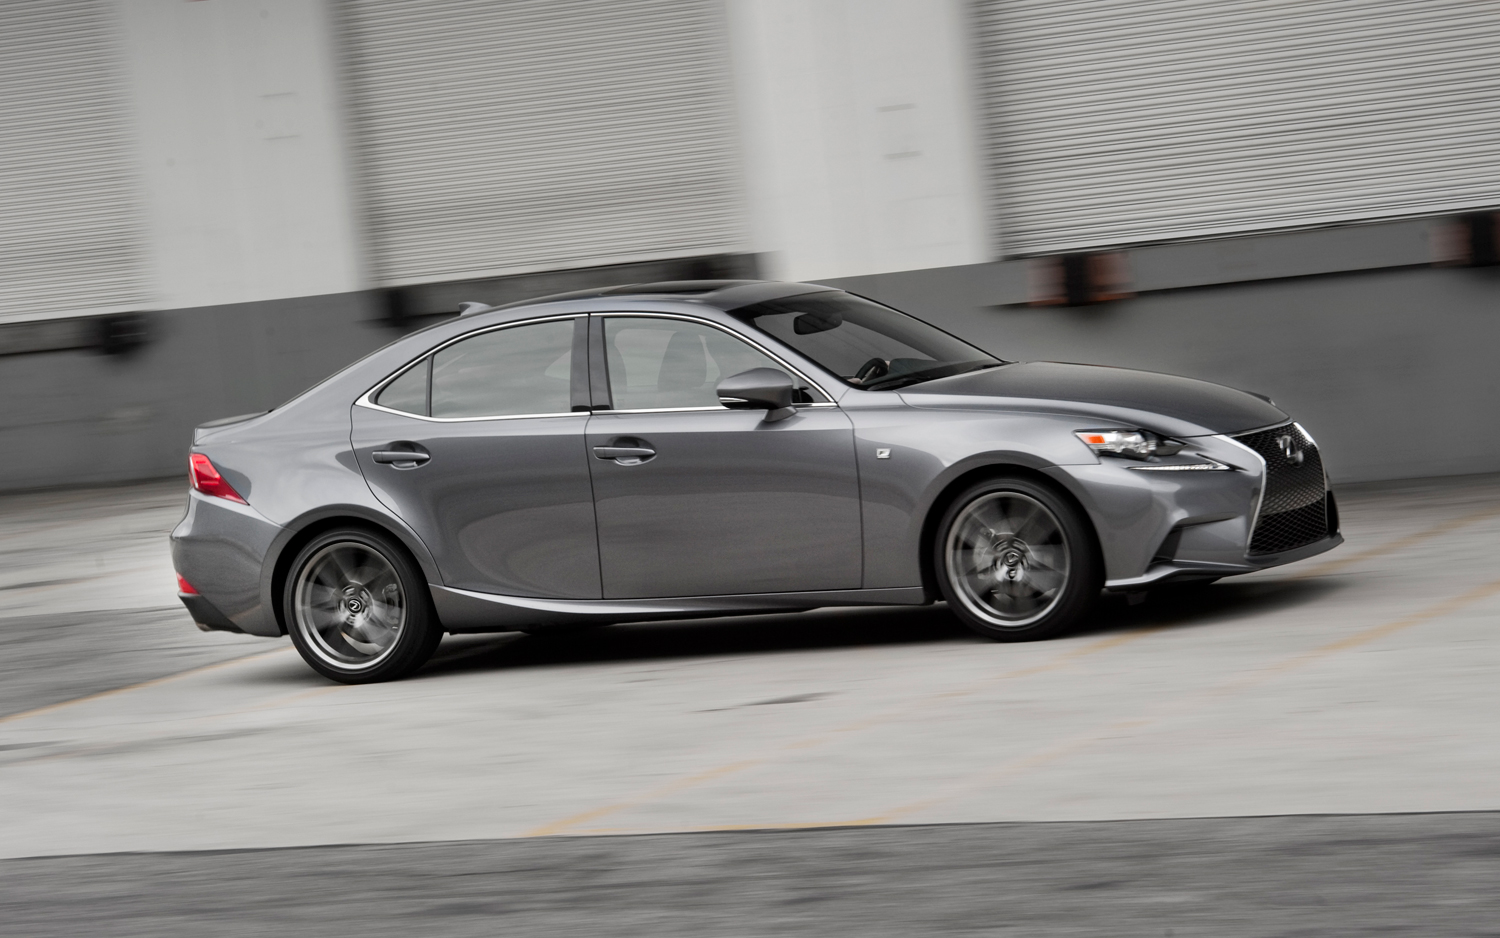 Charming 2014 Lexus IS 250 F Sport First Test